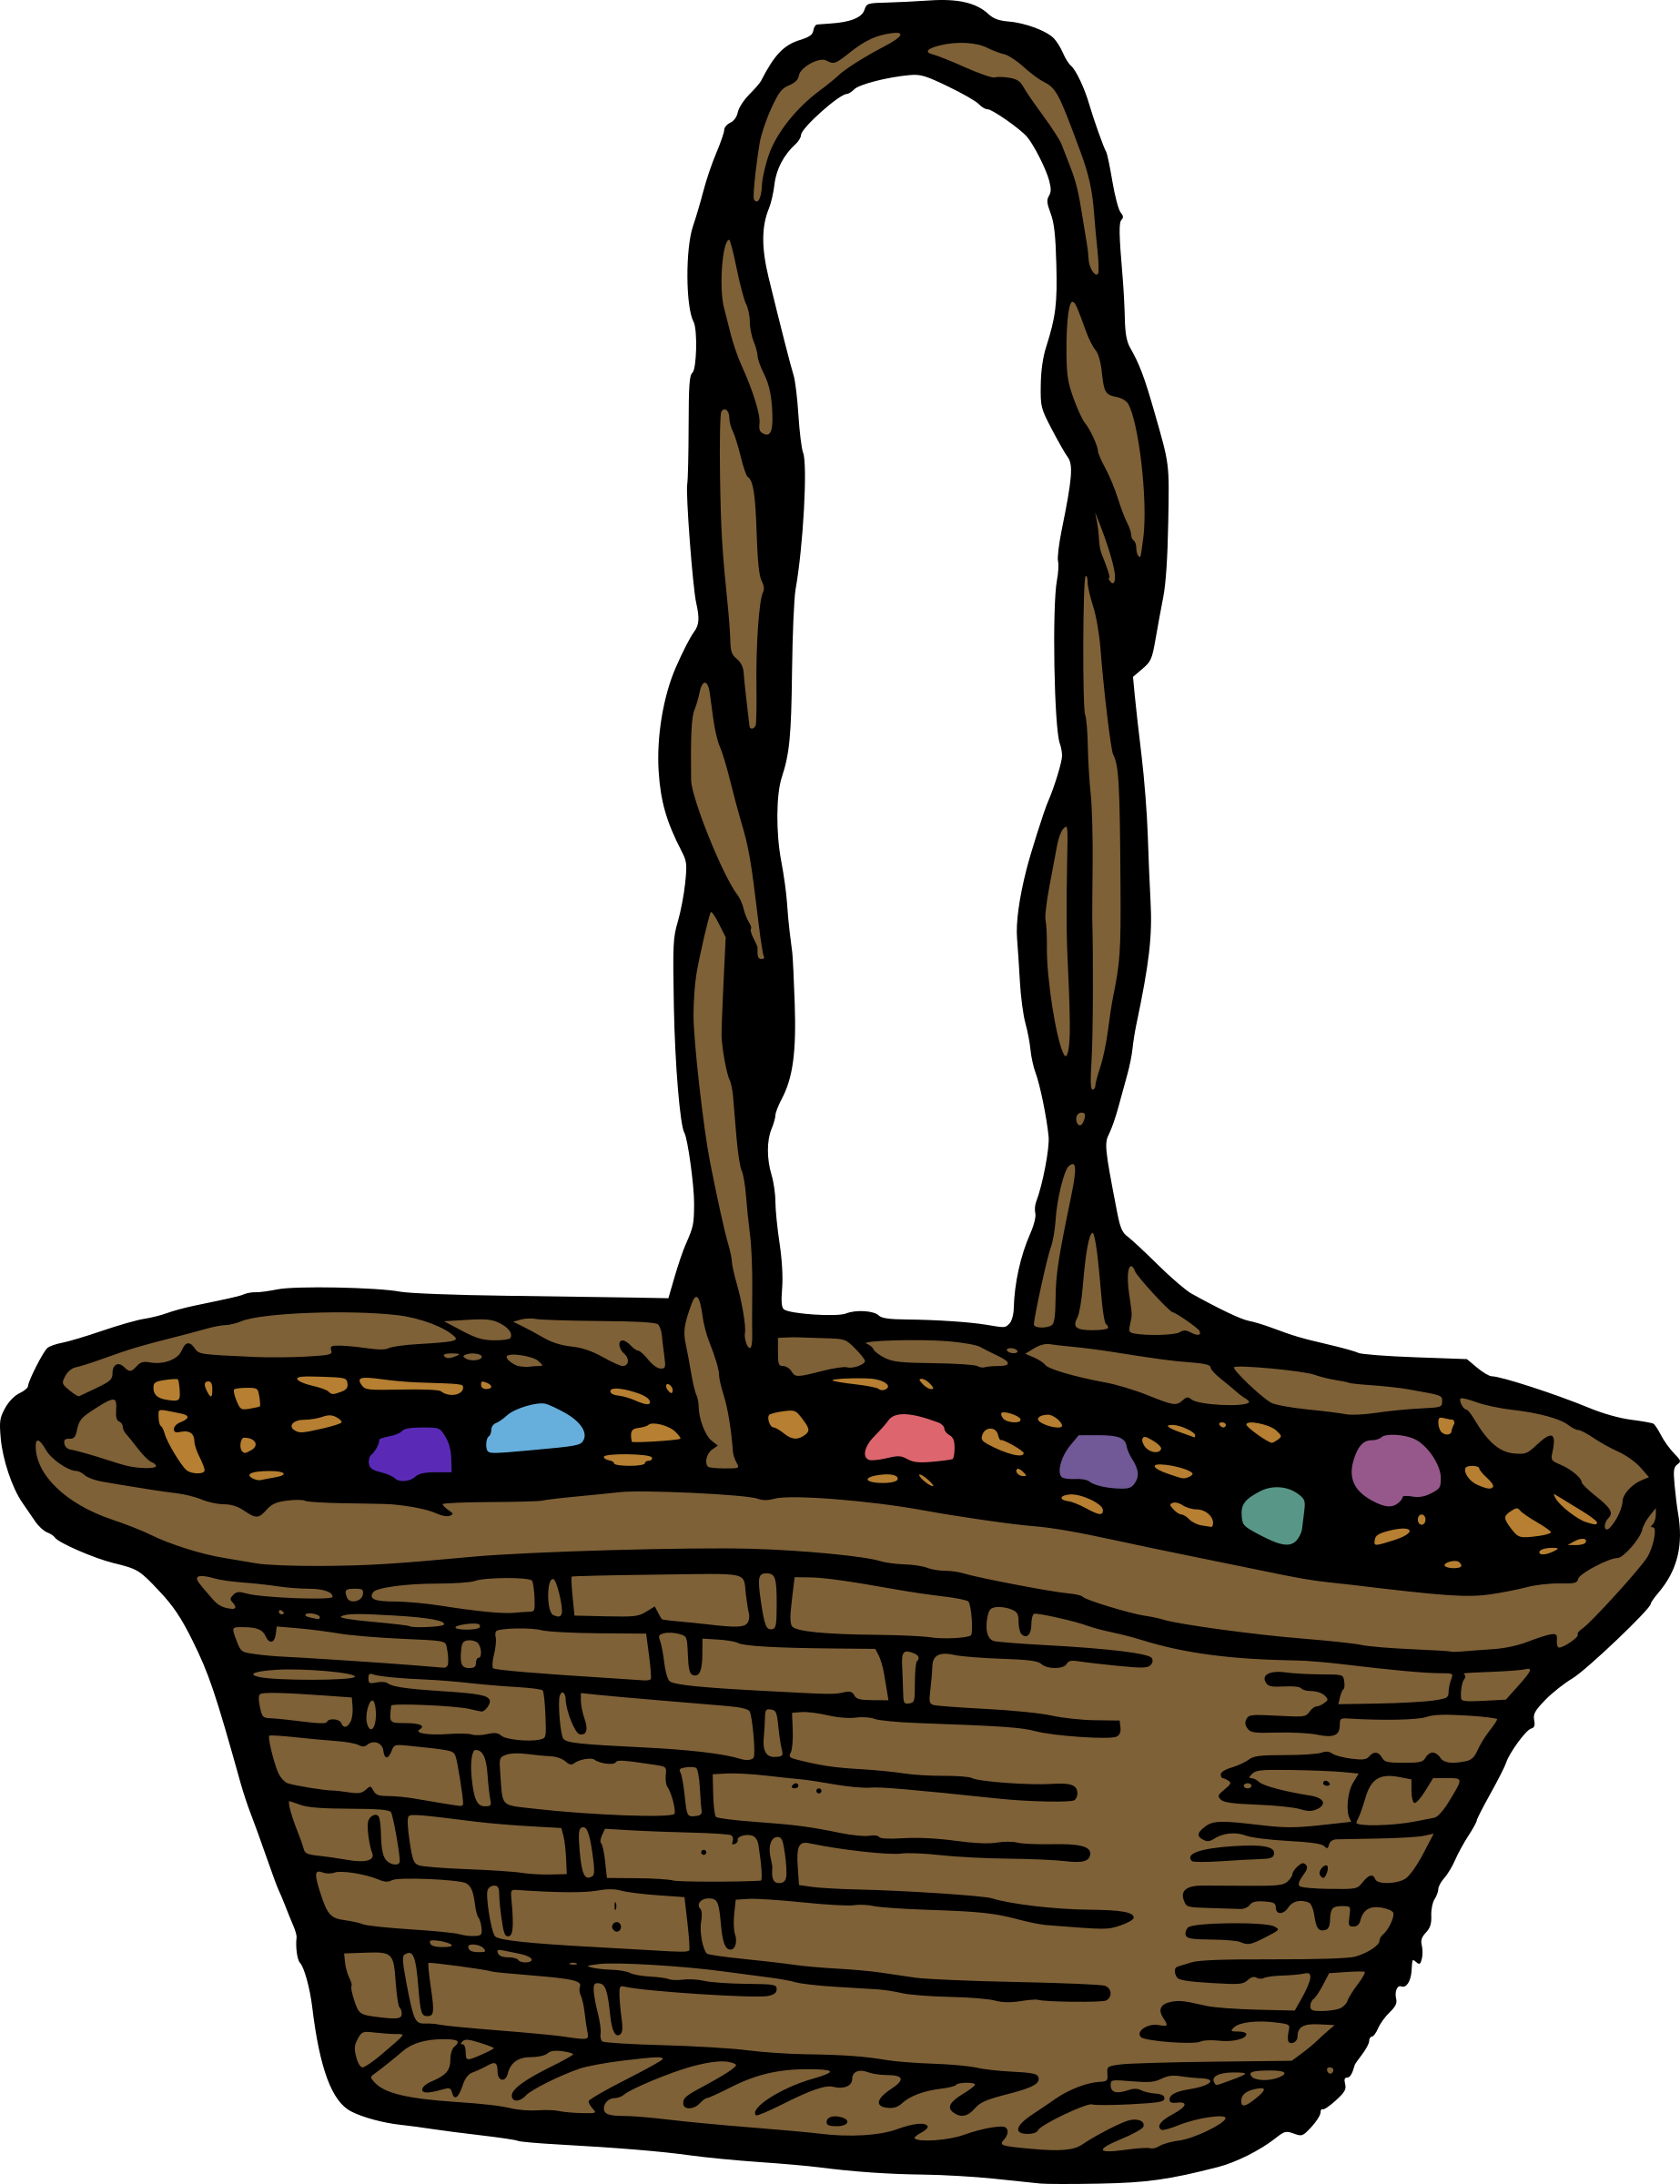 Easter Basket by j4p4n